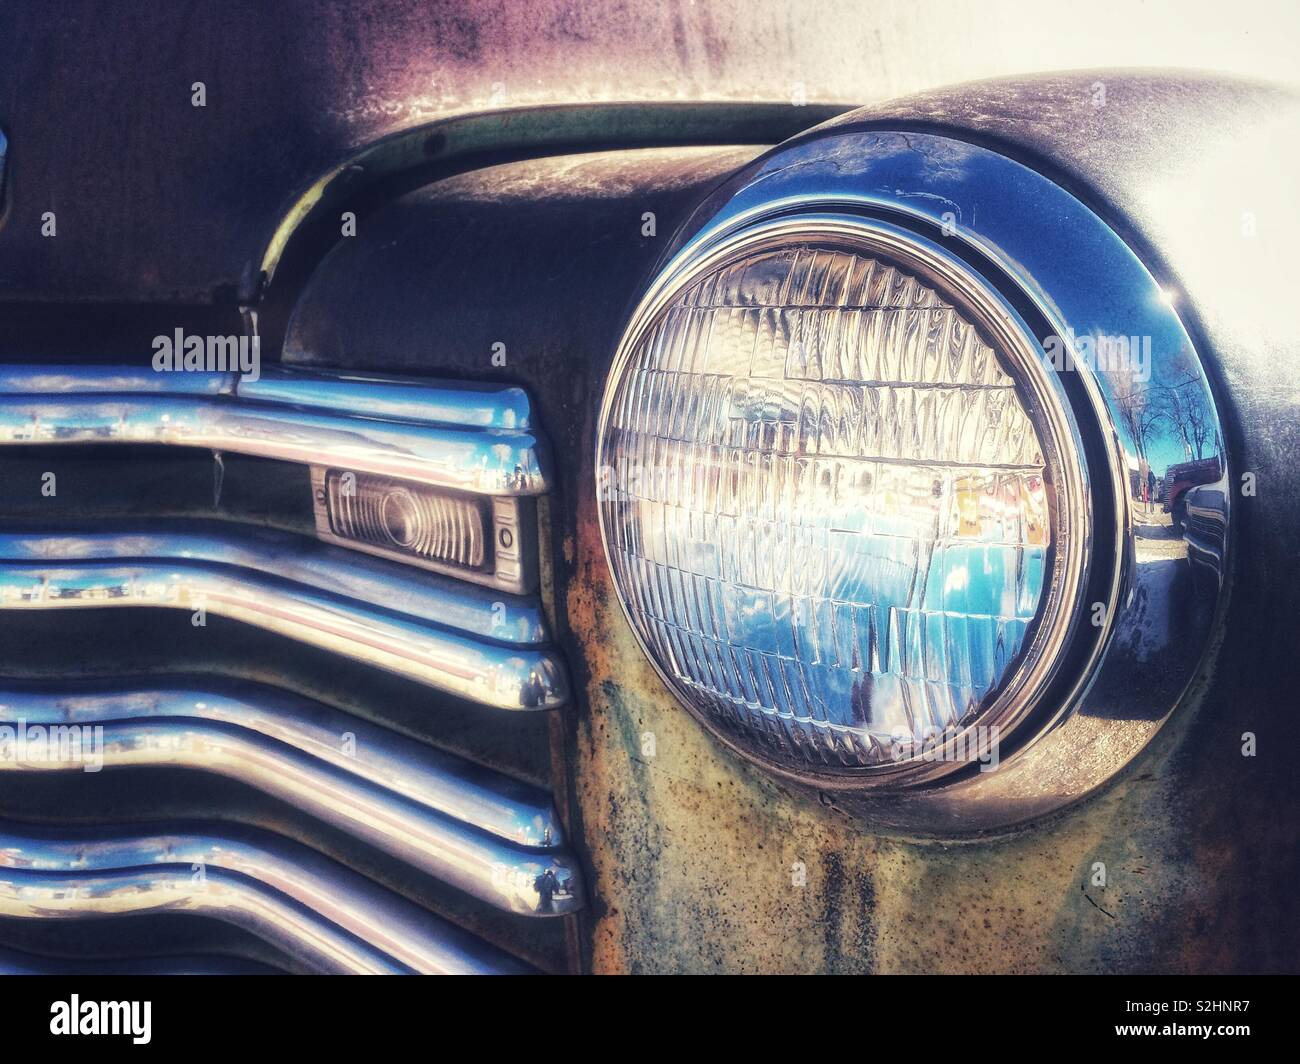 A touch of blue sky reflection on this old car. - Stock Image